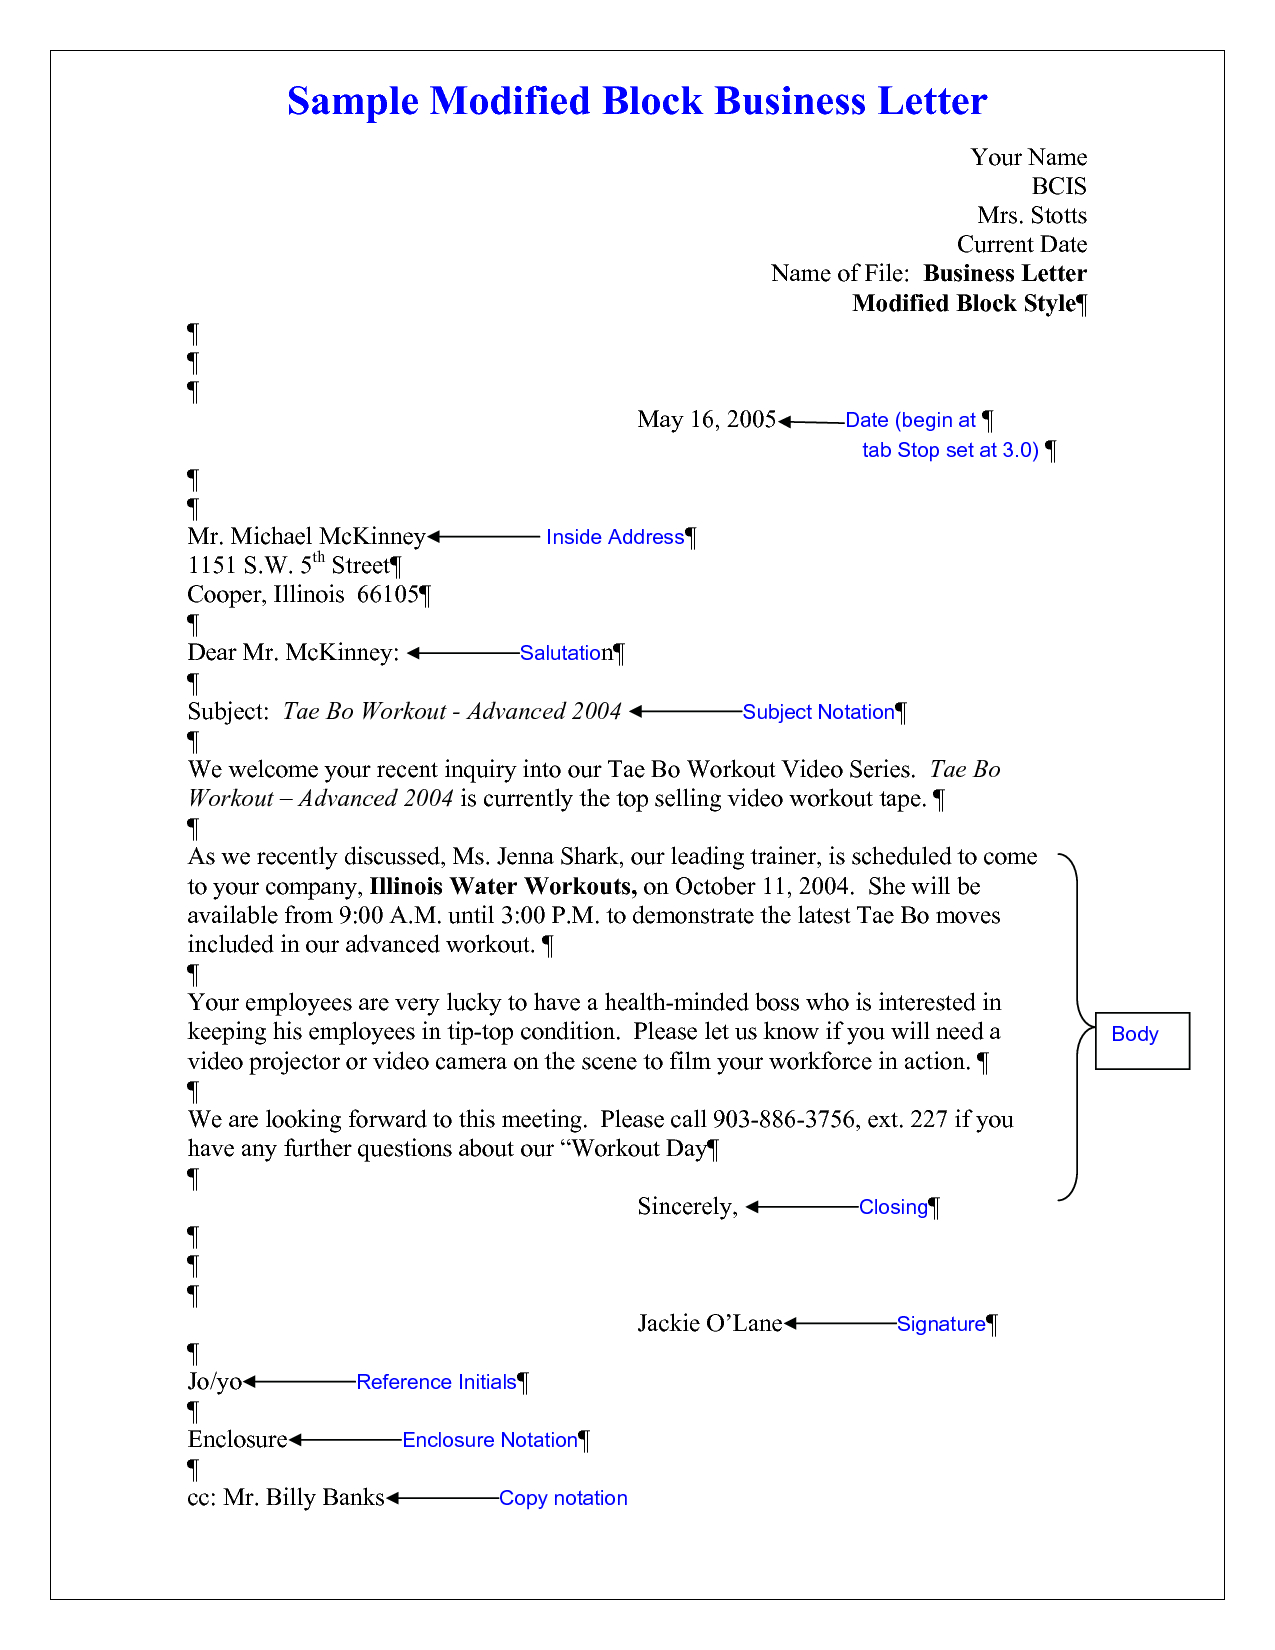 Modified Block Letter Template - How to Block Write Letters Gallery Letter format formal Sample